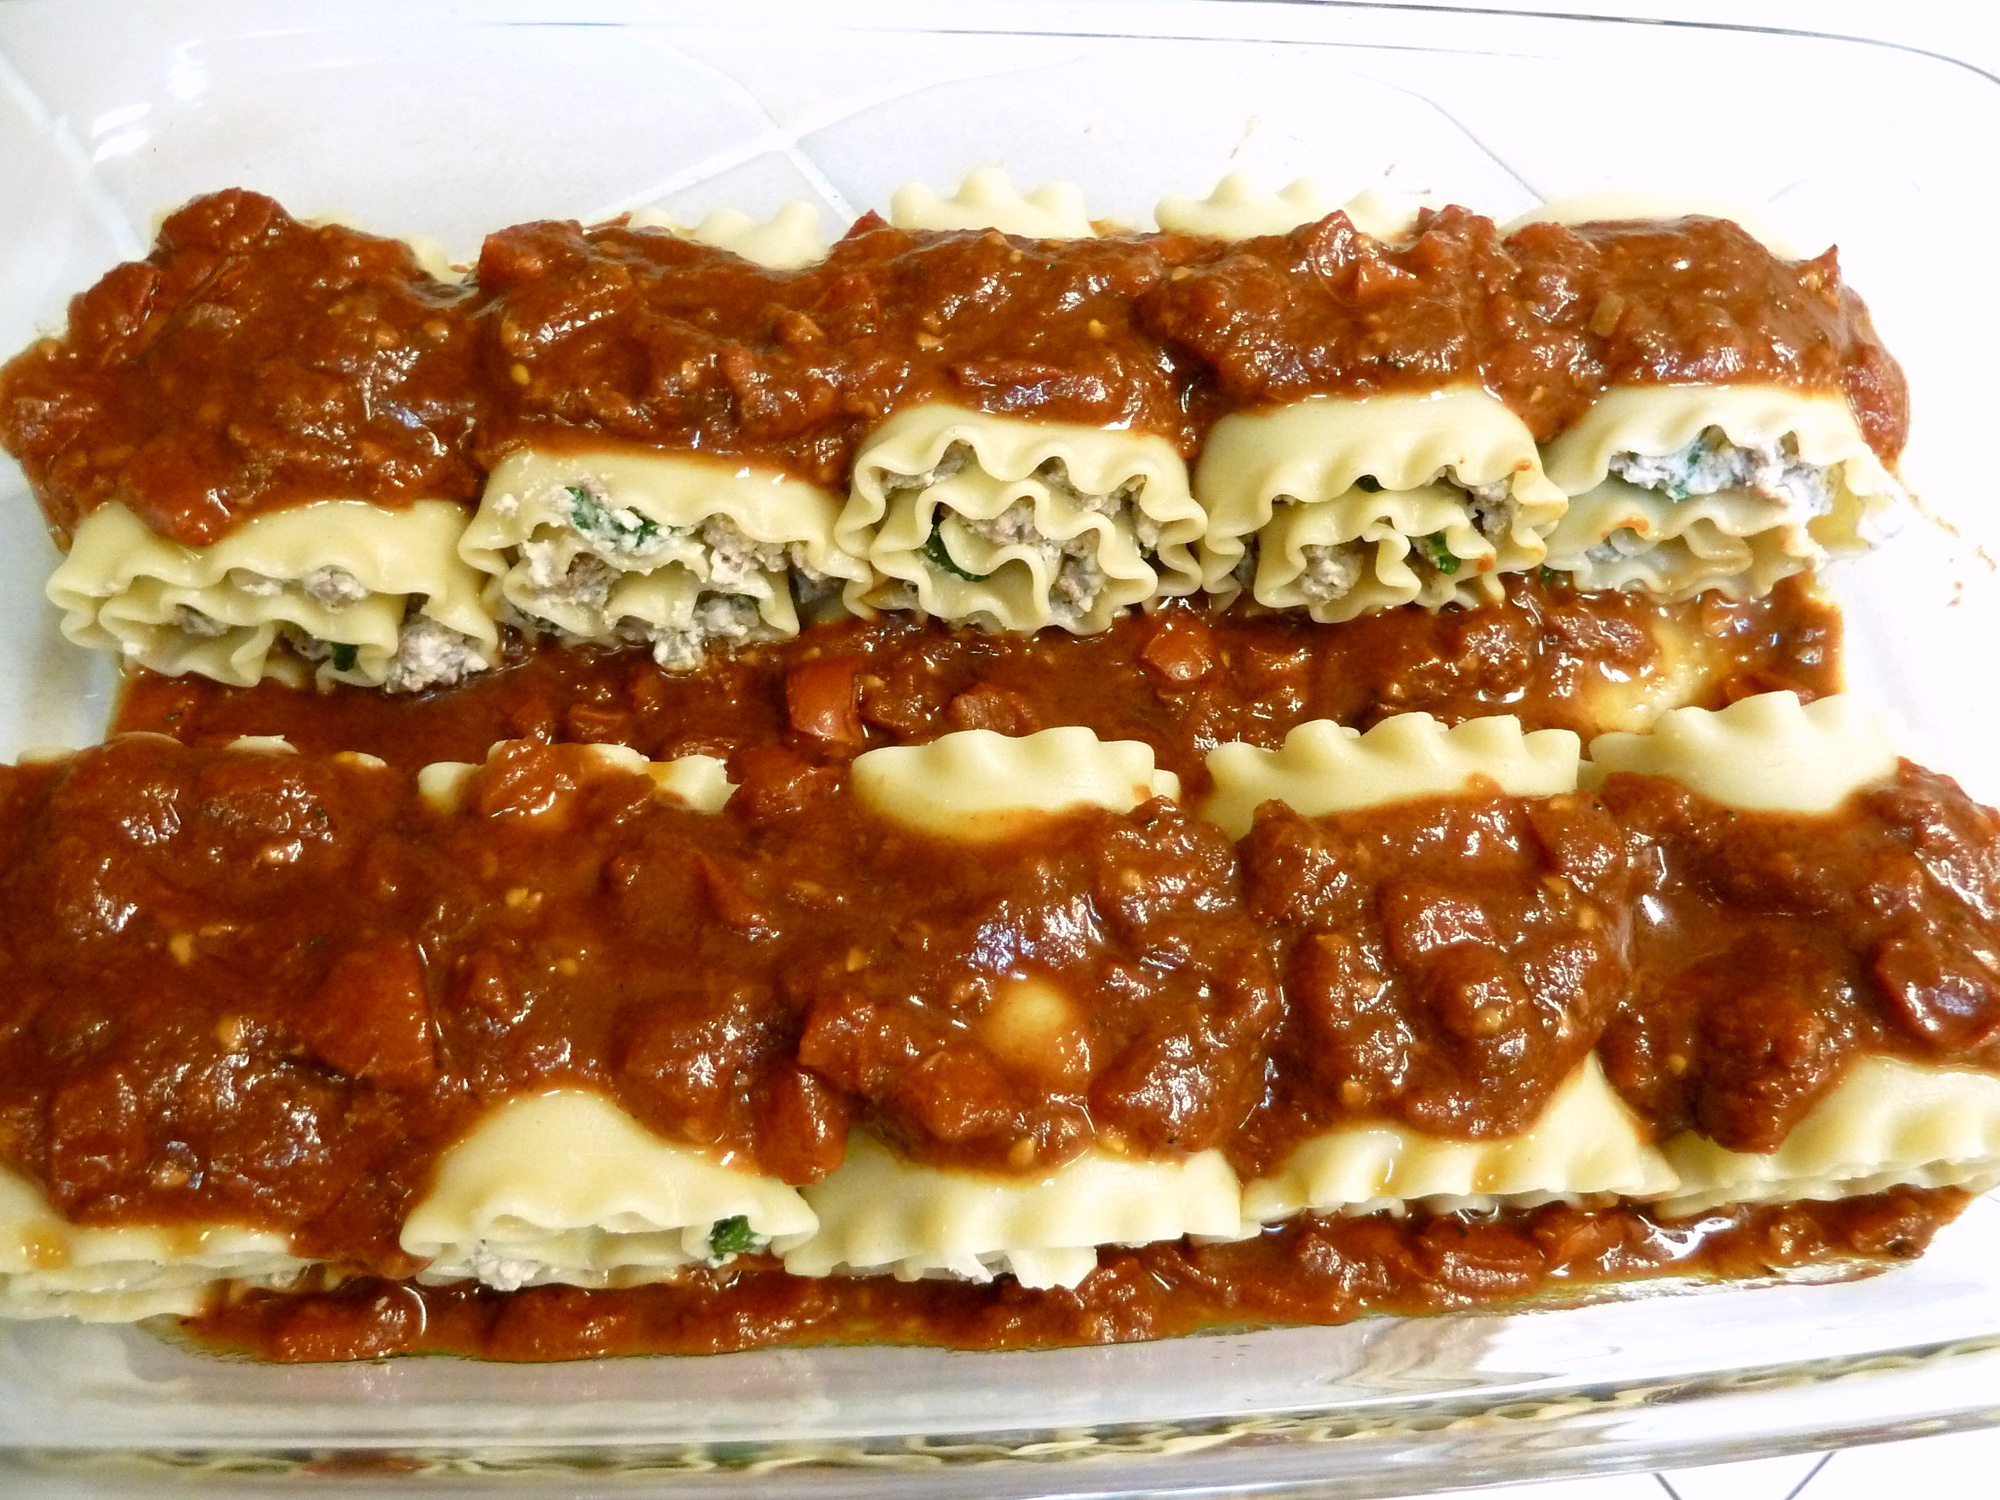 Top lasagna rolls with marinara sauce.